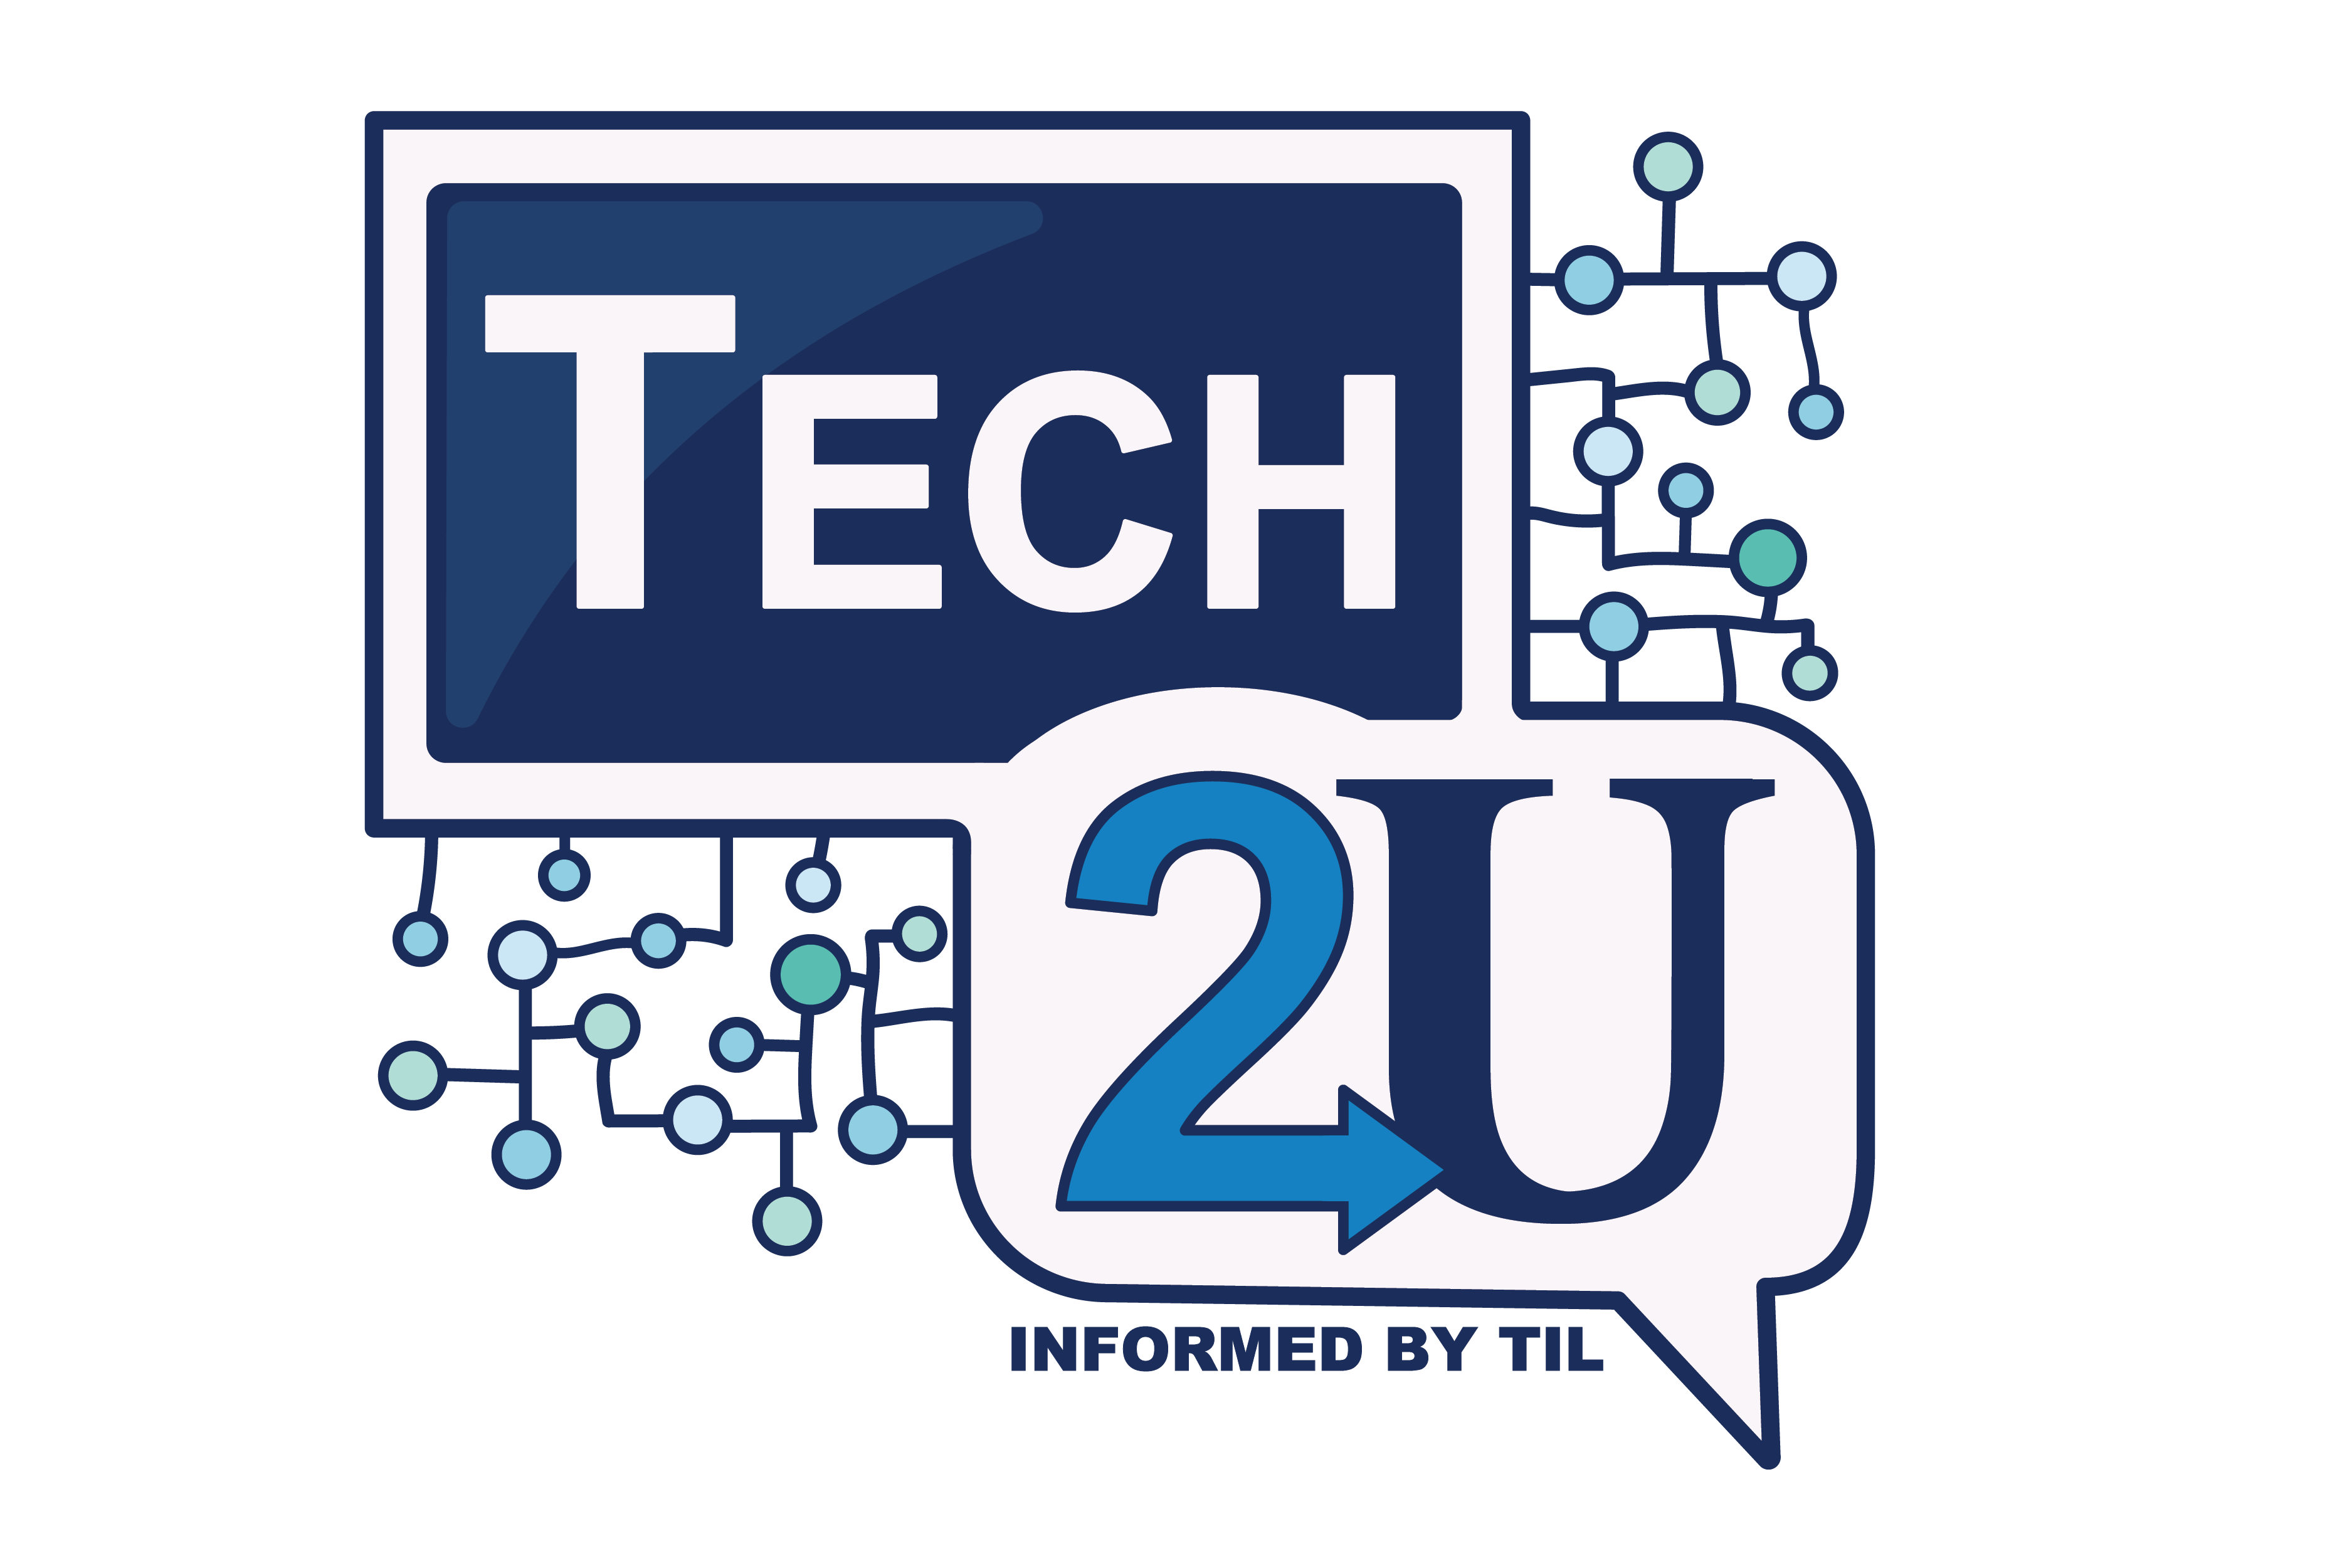 Logo representing Tech2U with a blue and white tablet and a conversation bubble overlapping.